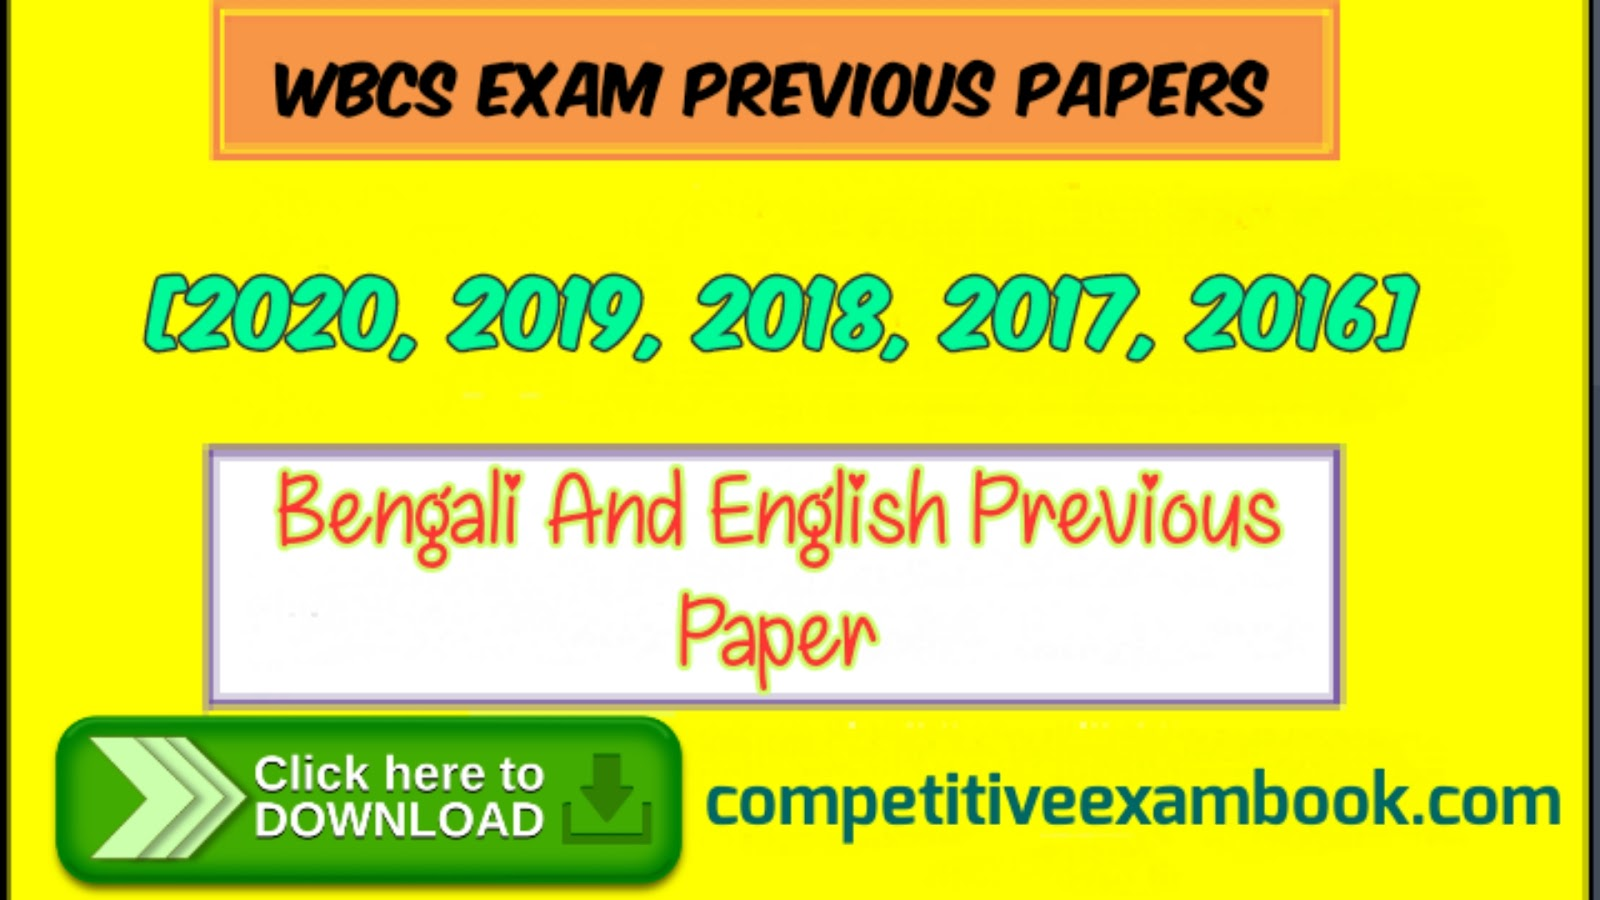 WBCS Question Papers 2020/19/18, Download PDF in Bengali & English